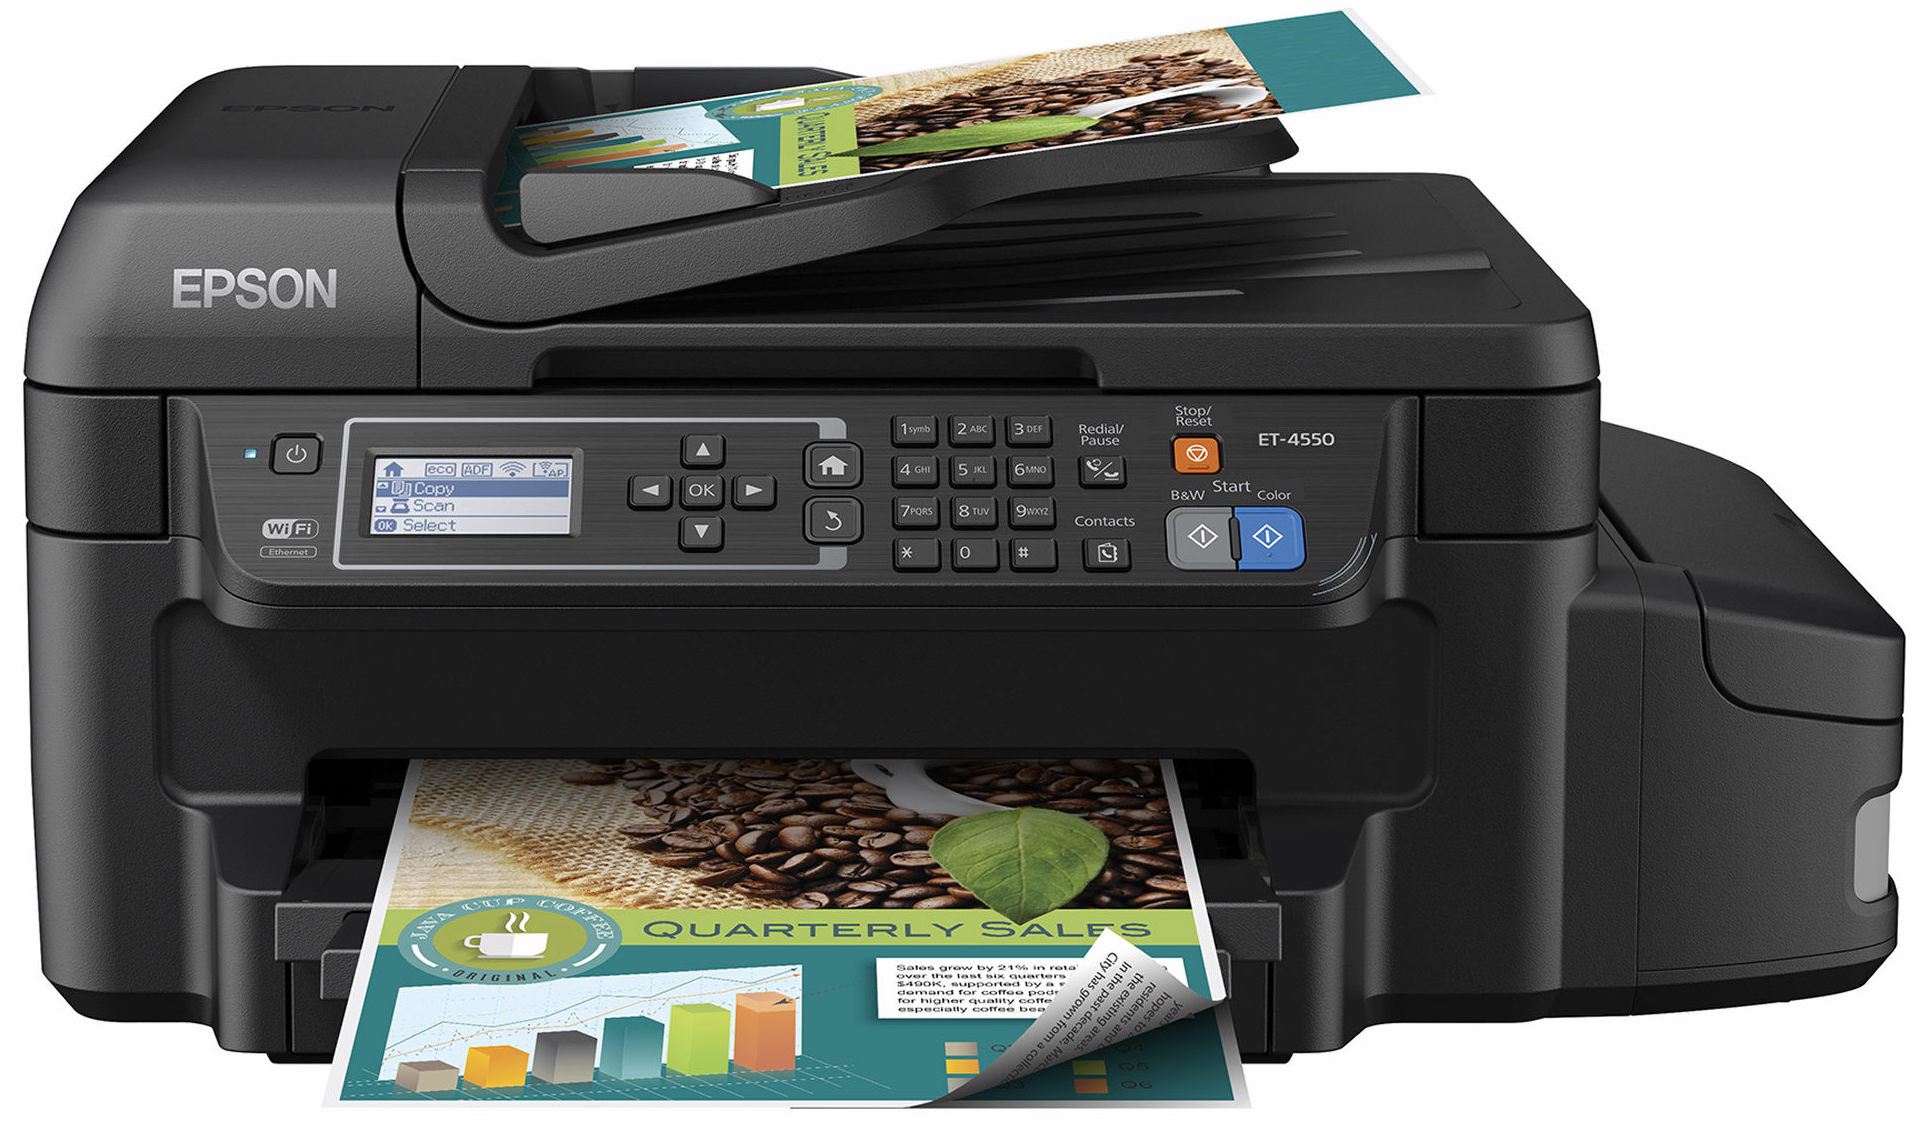 Top Three All-in-One Inkjet Printers